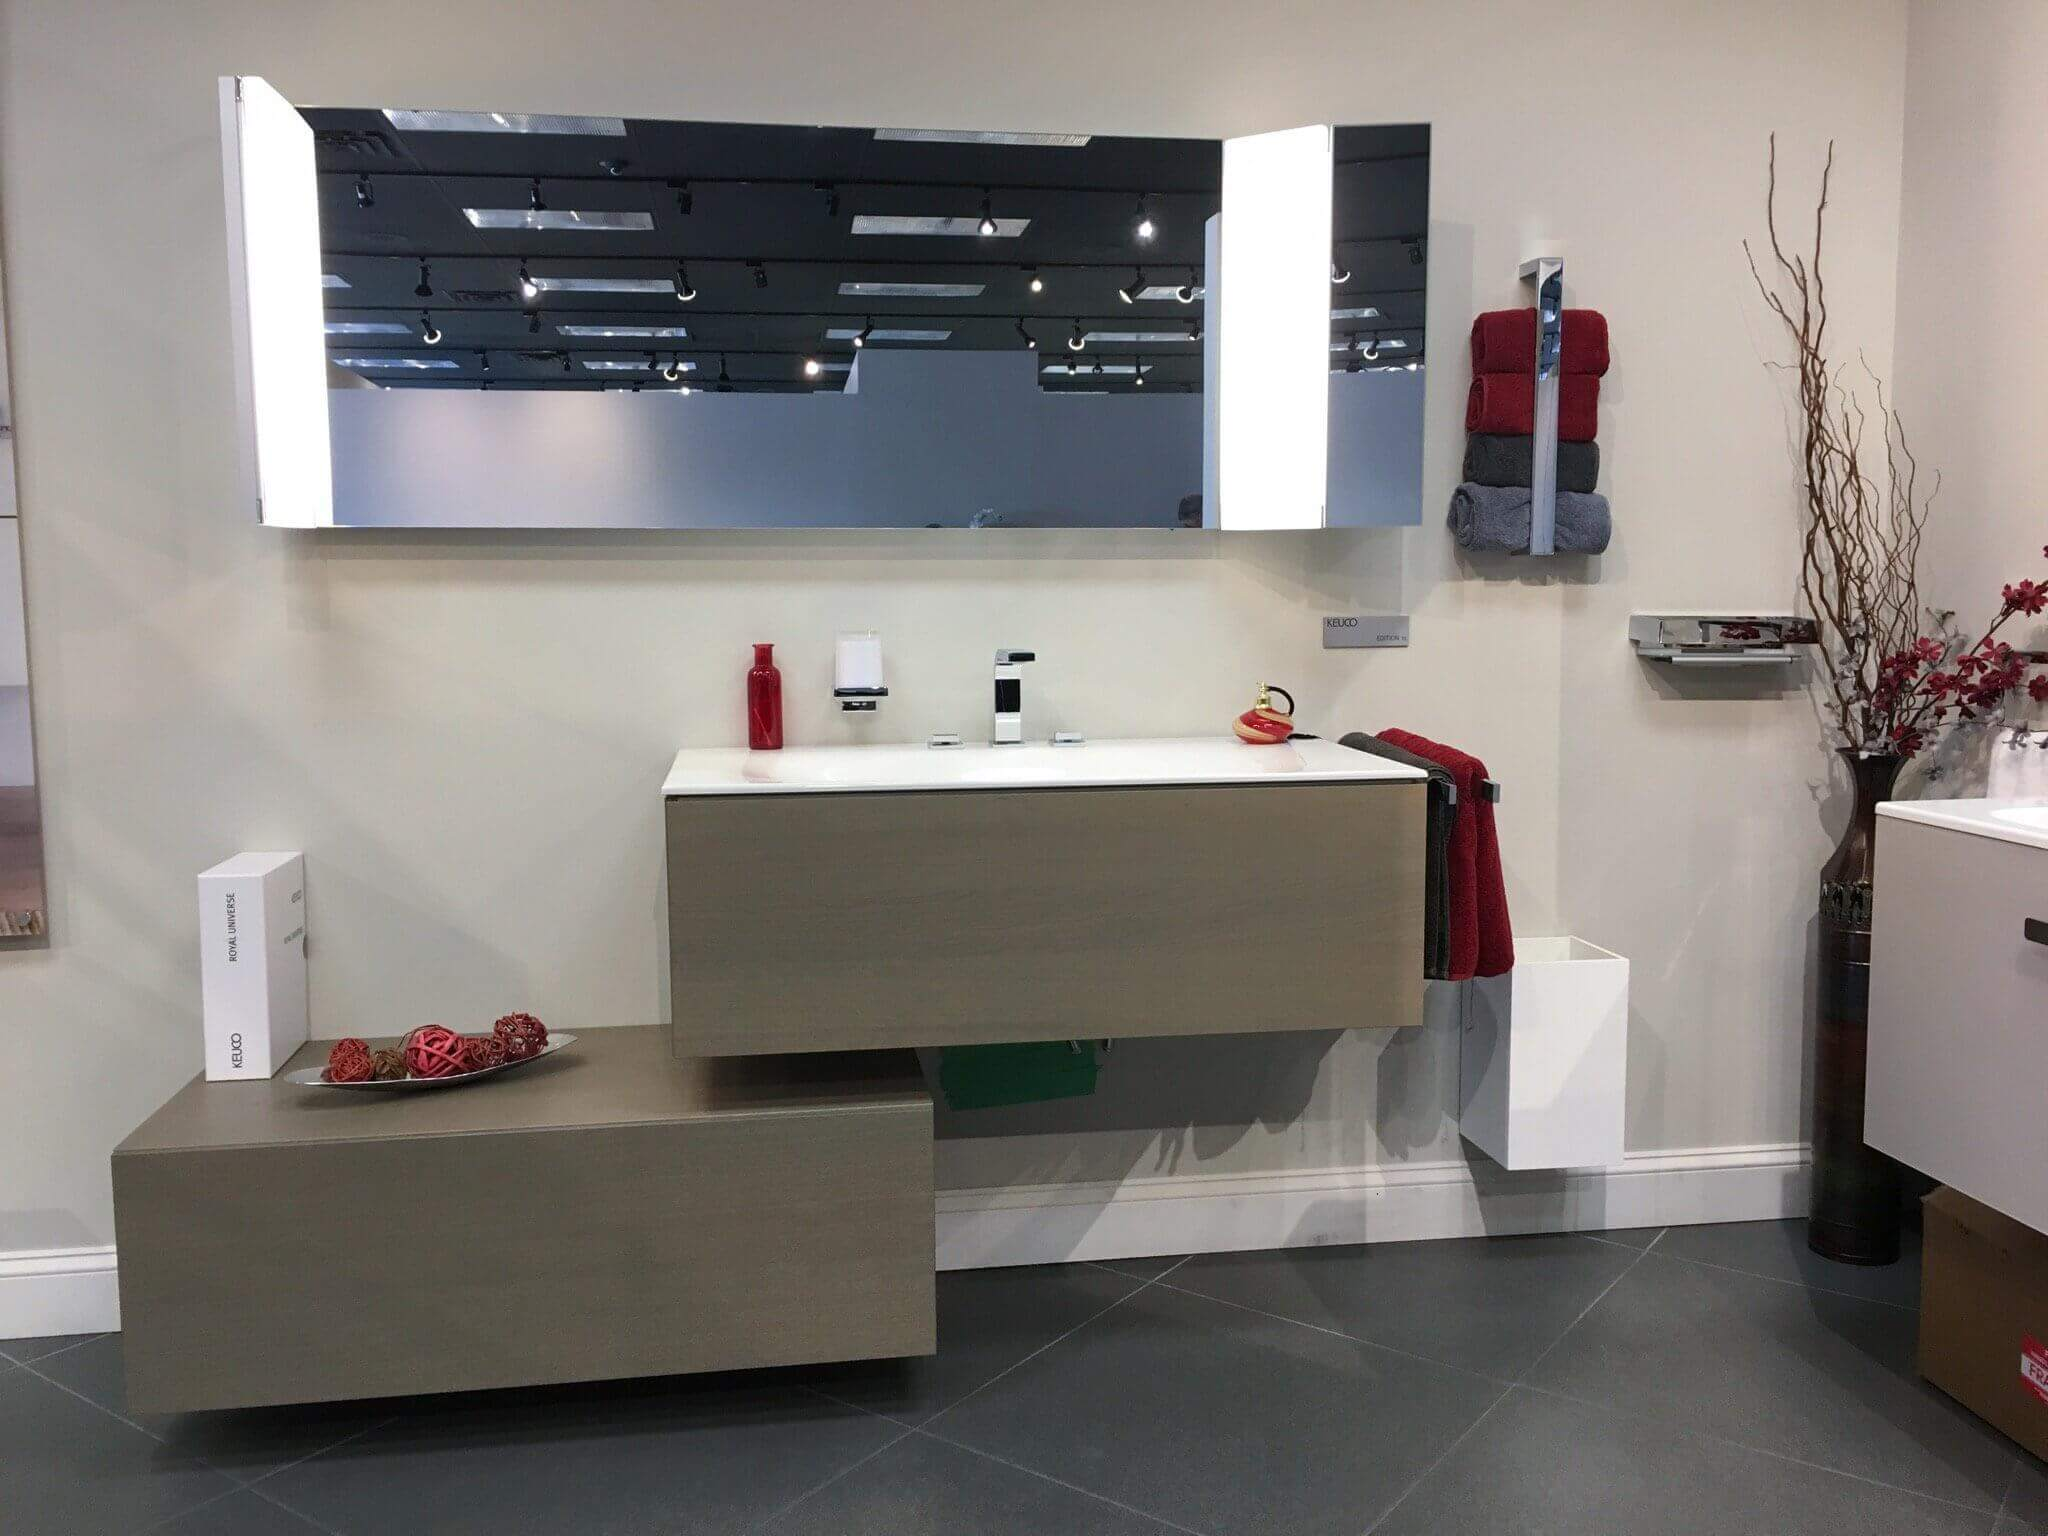 Contemporary furniture stores in chicago il - Working On A Project